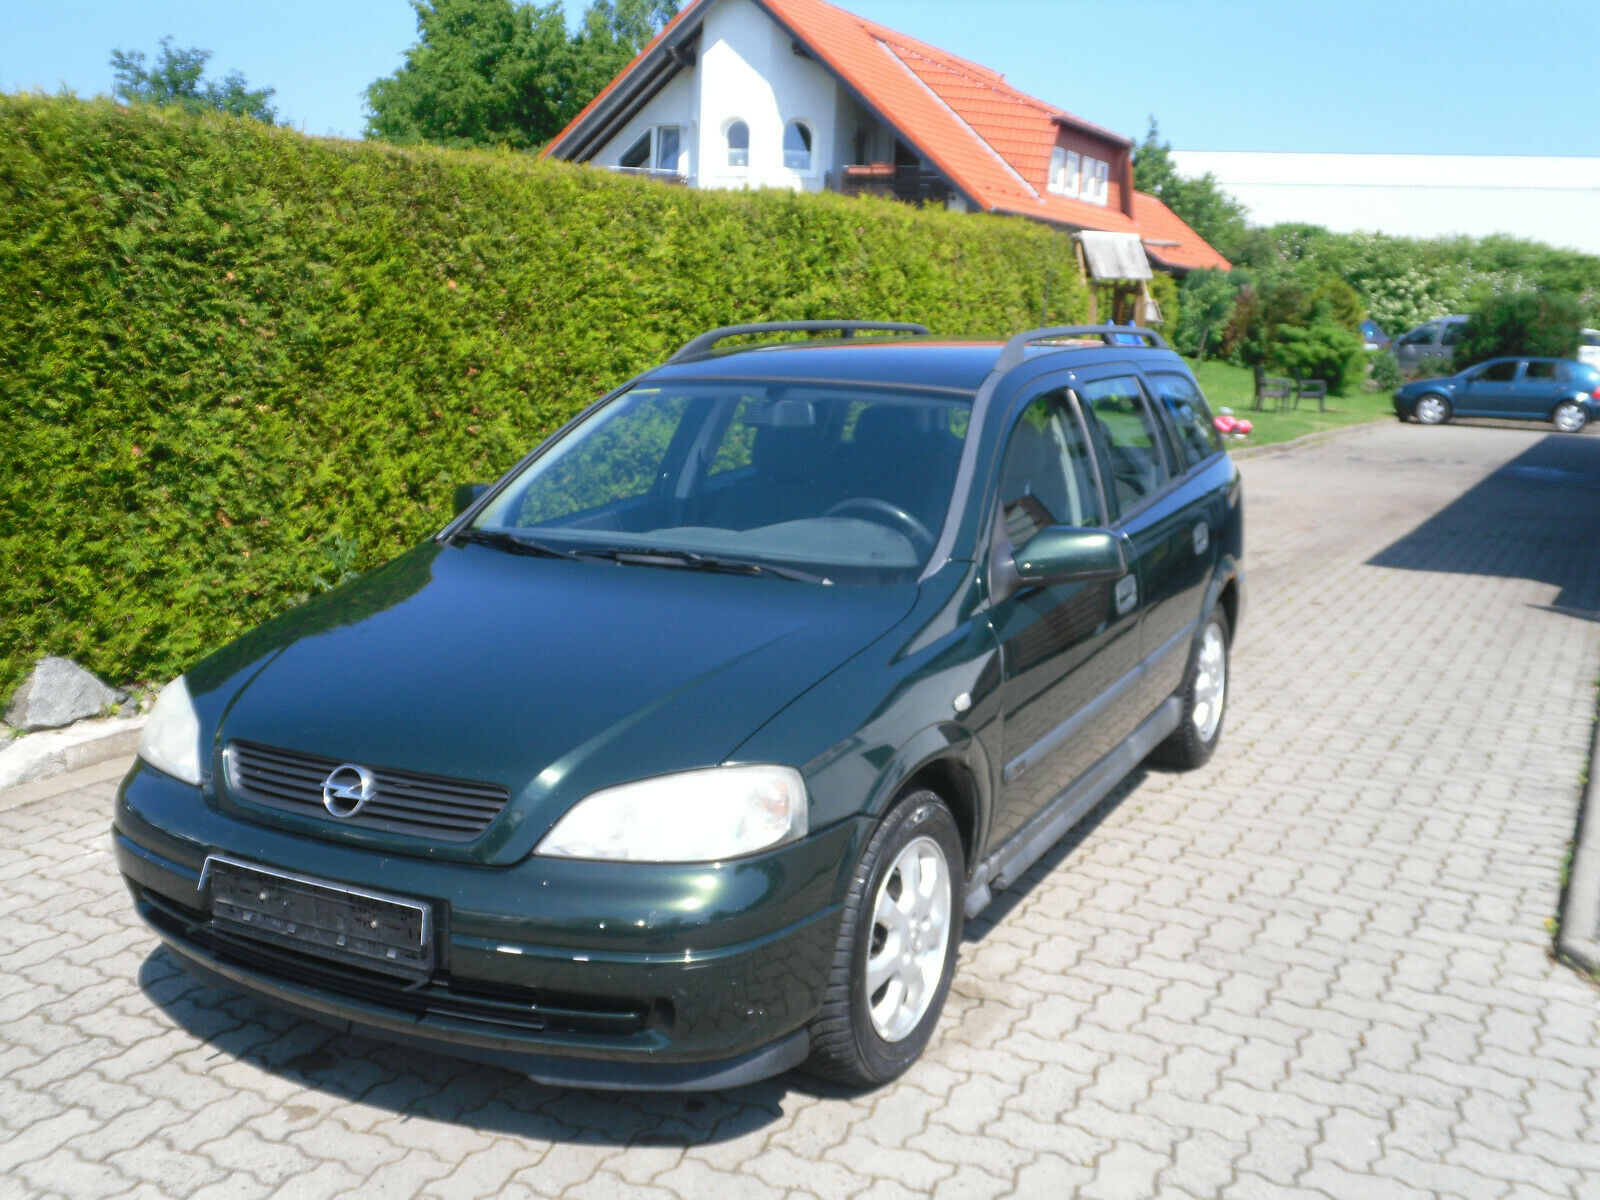 OPEL Astra 1.6 16V Selection Klimaanlage Euro3/D4